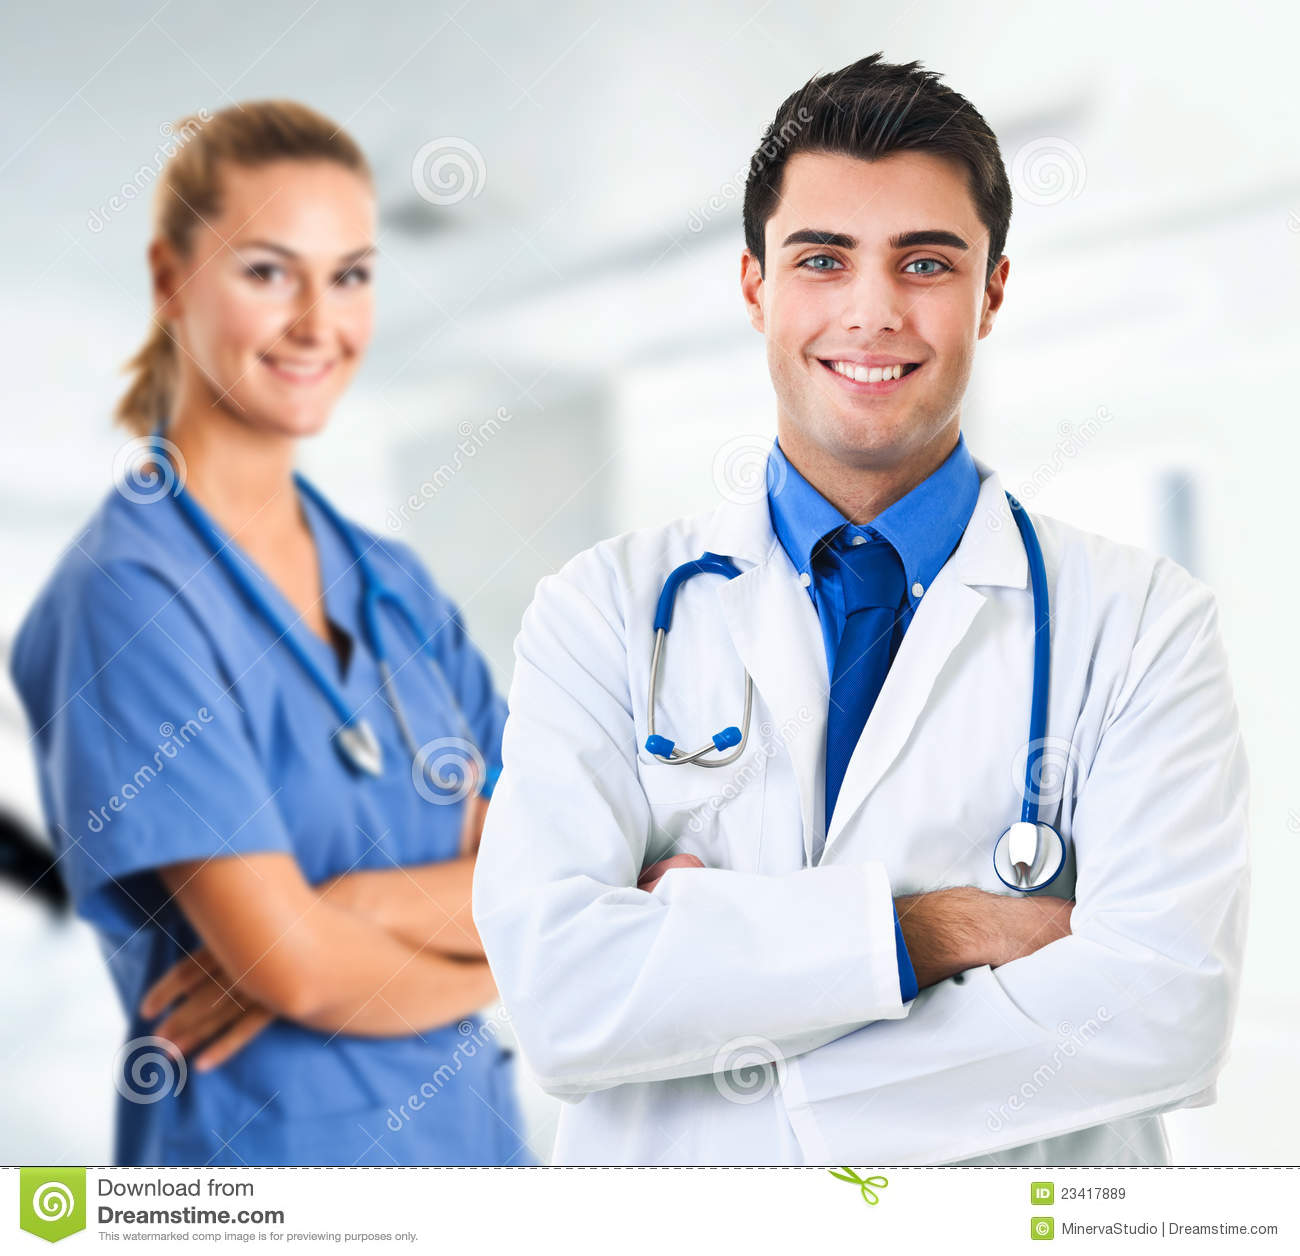 doctor and nurse royalty free stock images image 23417889